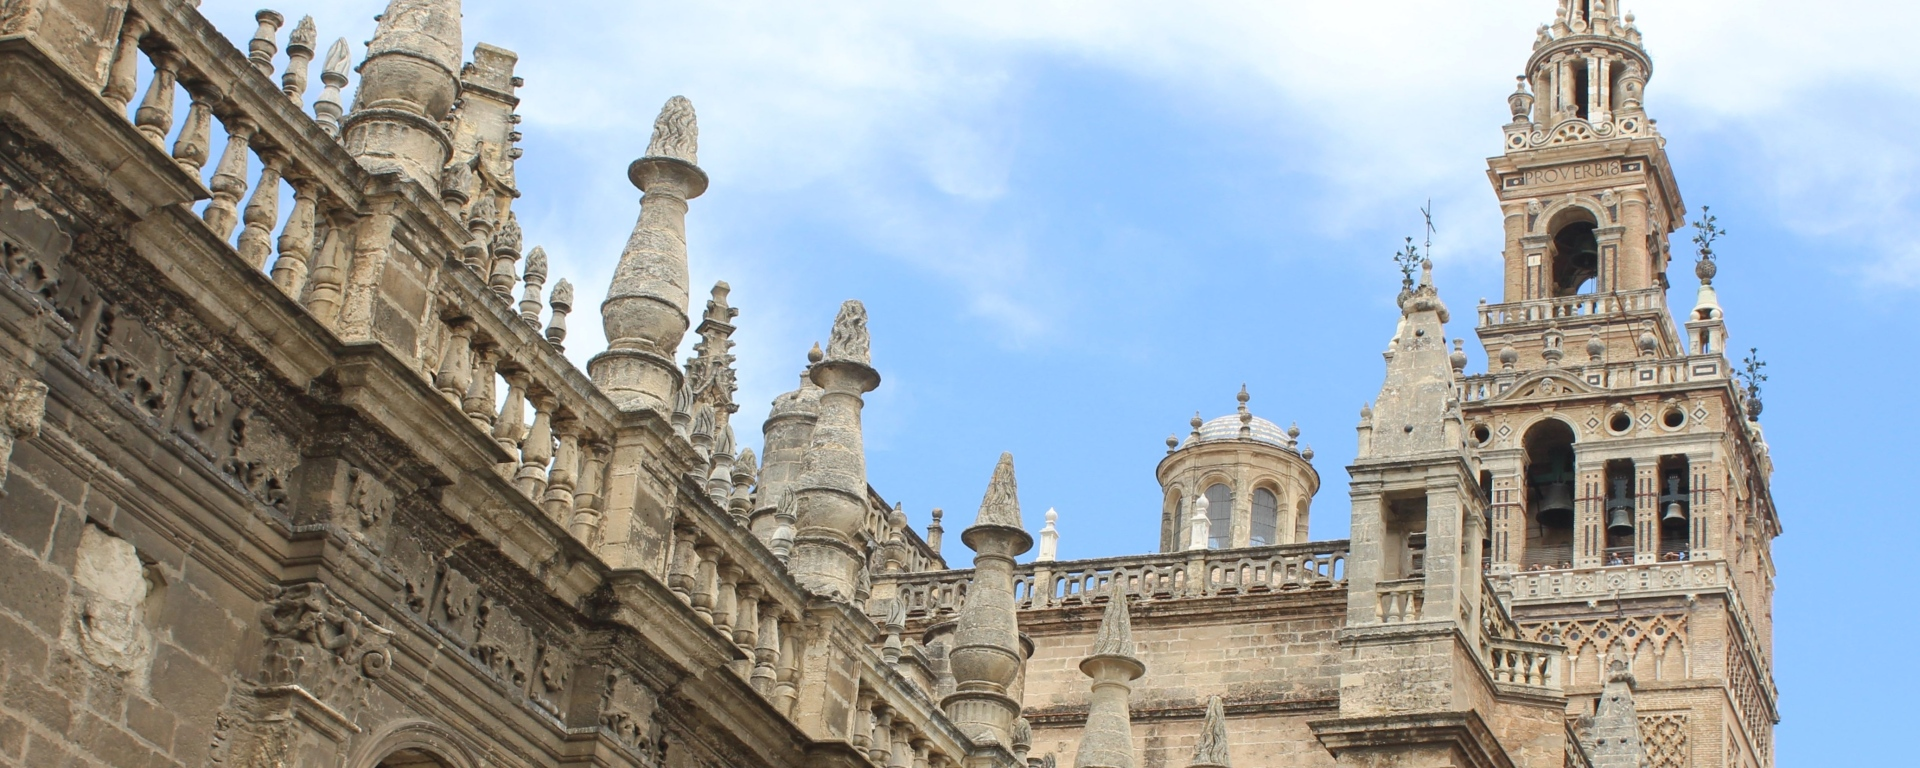 Seville, Spain, cathedral, La Giralda, Giralda, travel, photography, photos, travel photography